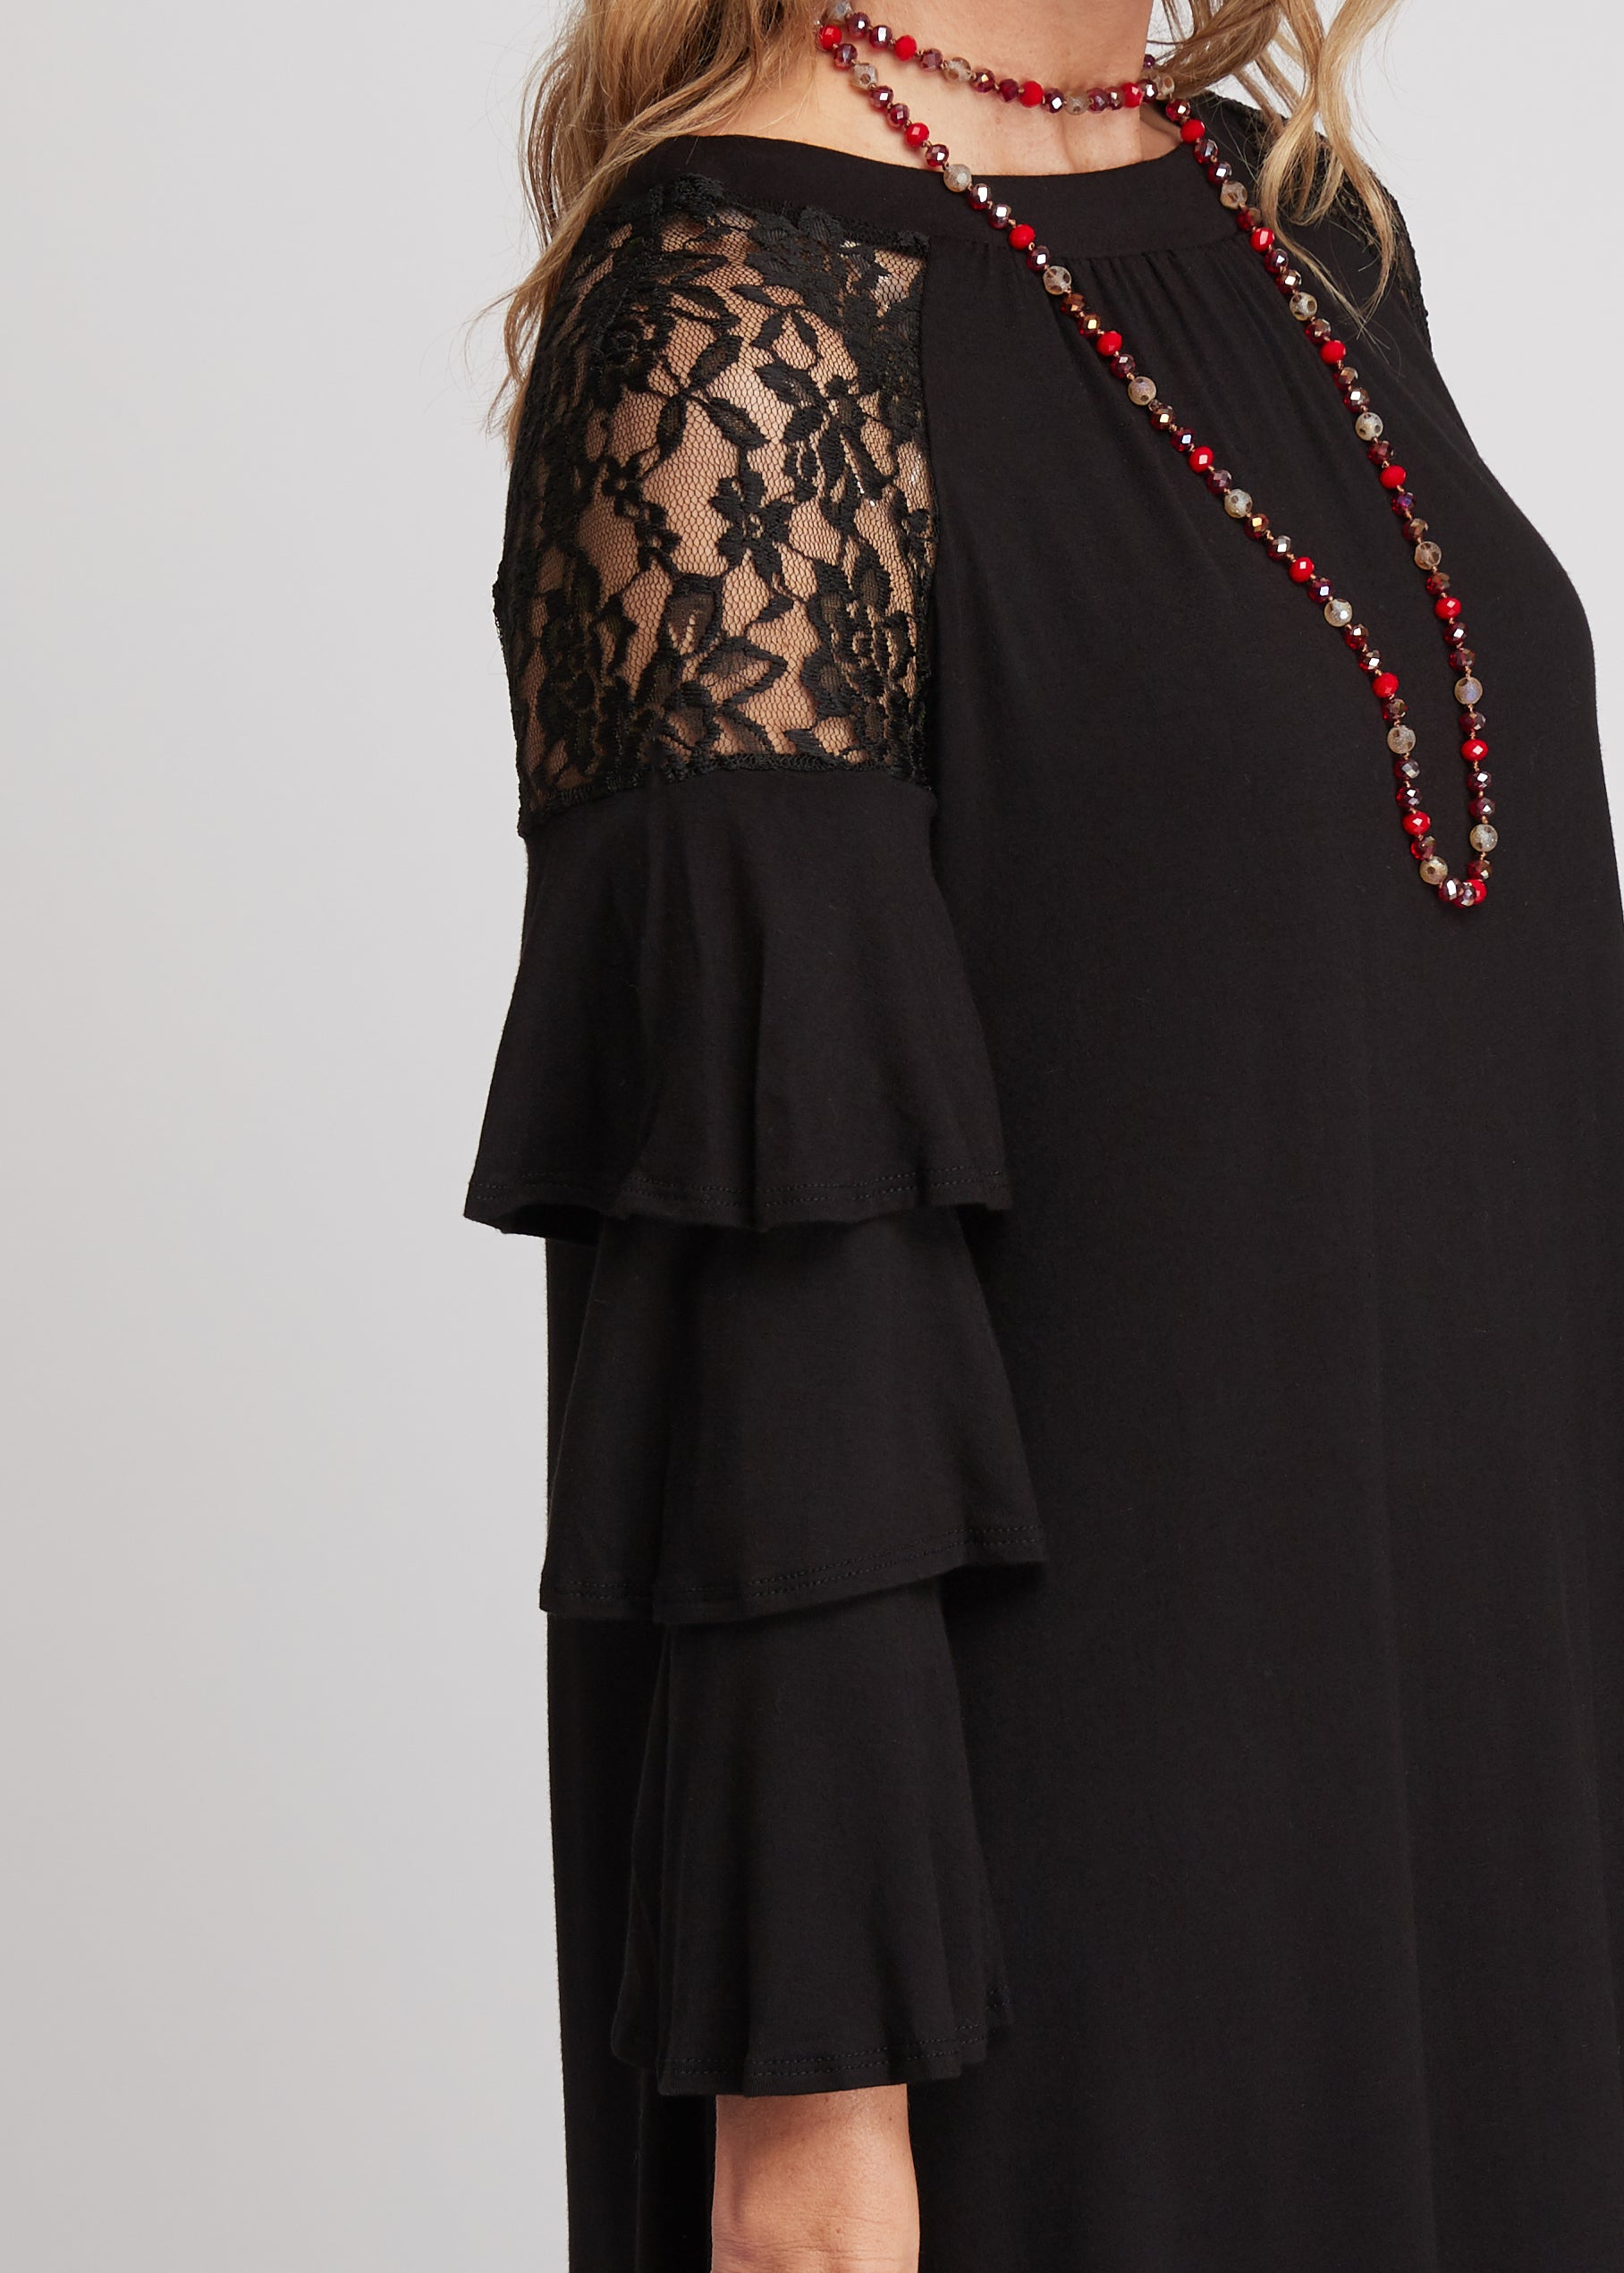 Love Story Dress -BLACK - FINAL SALE